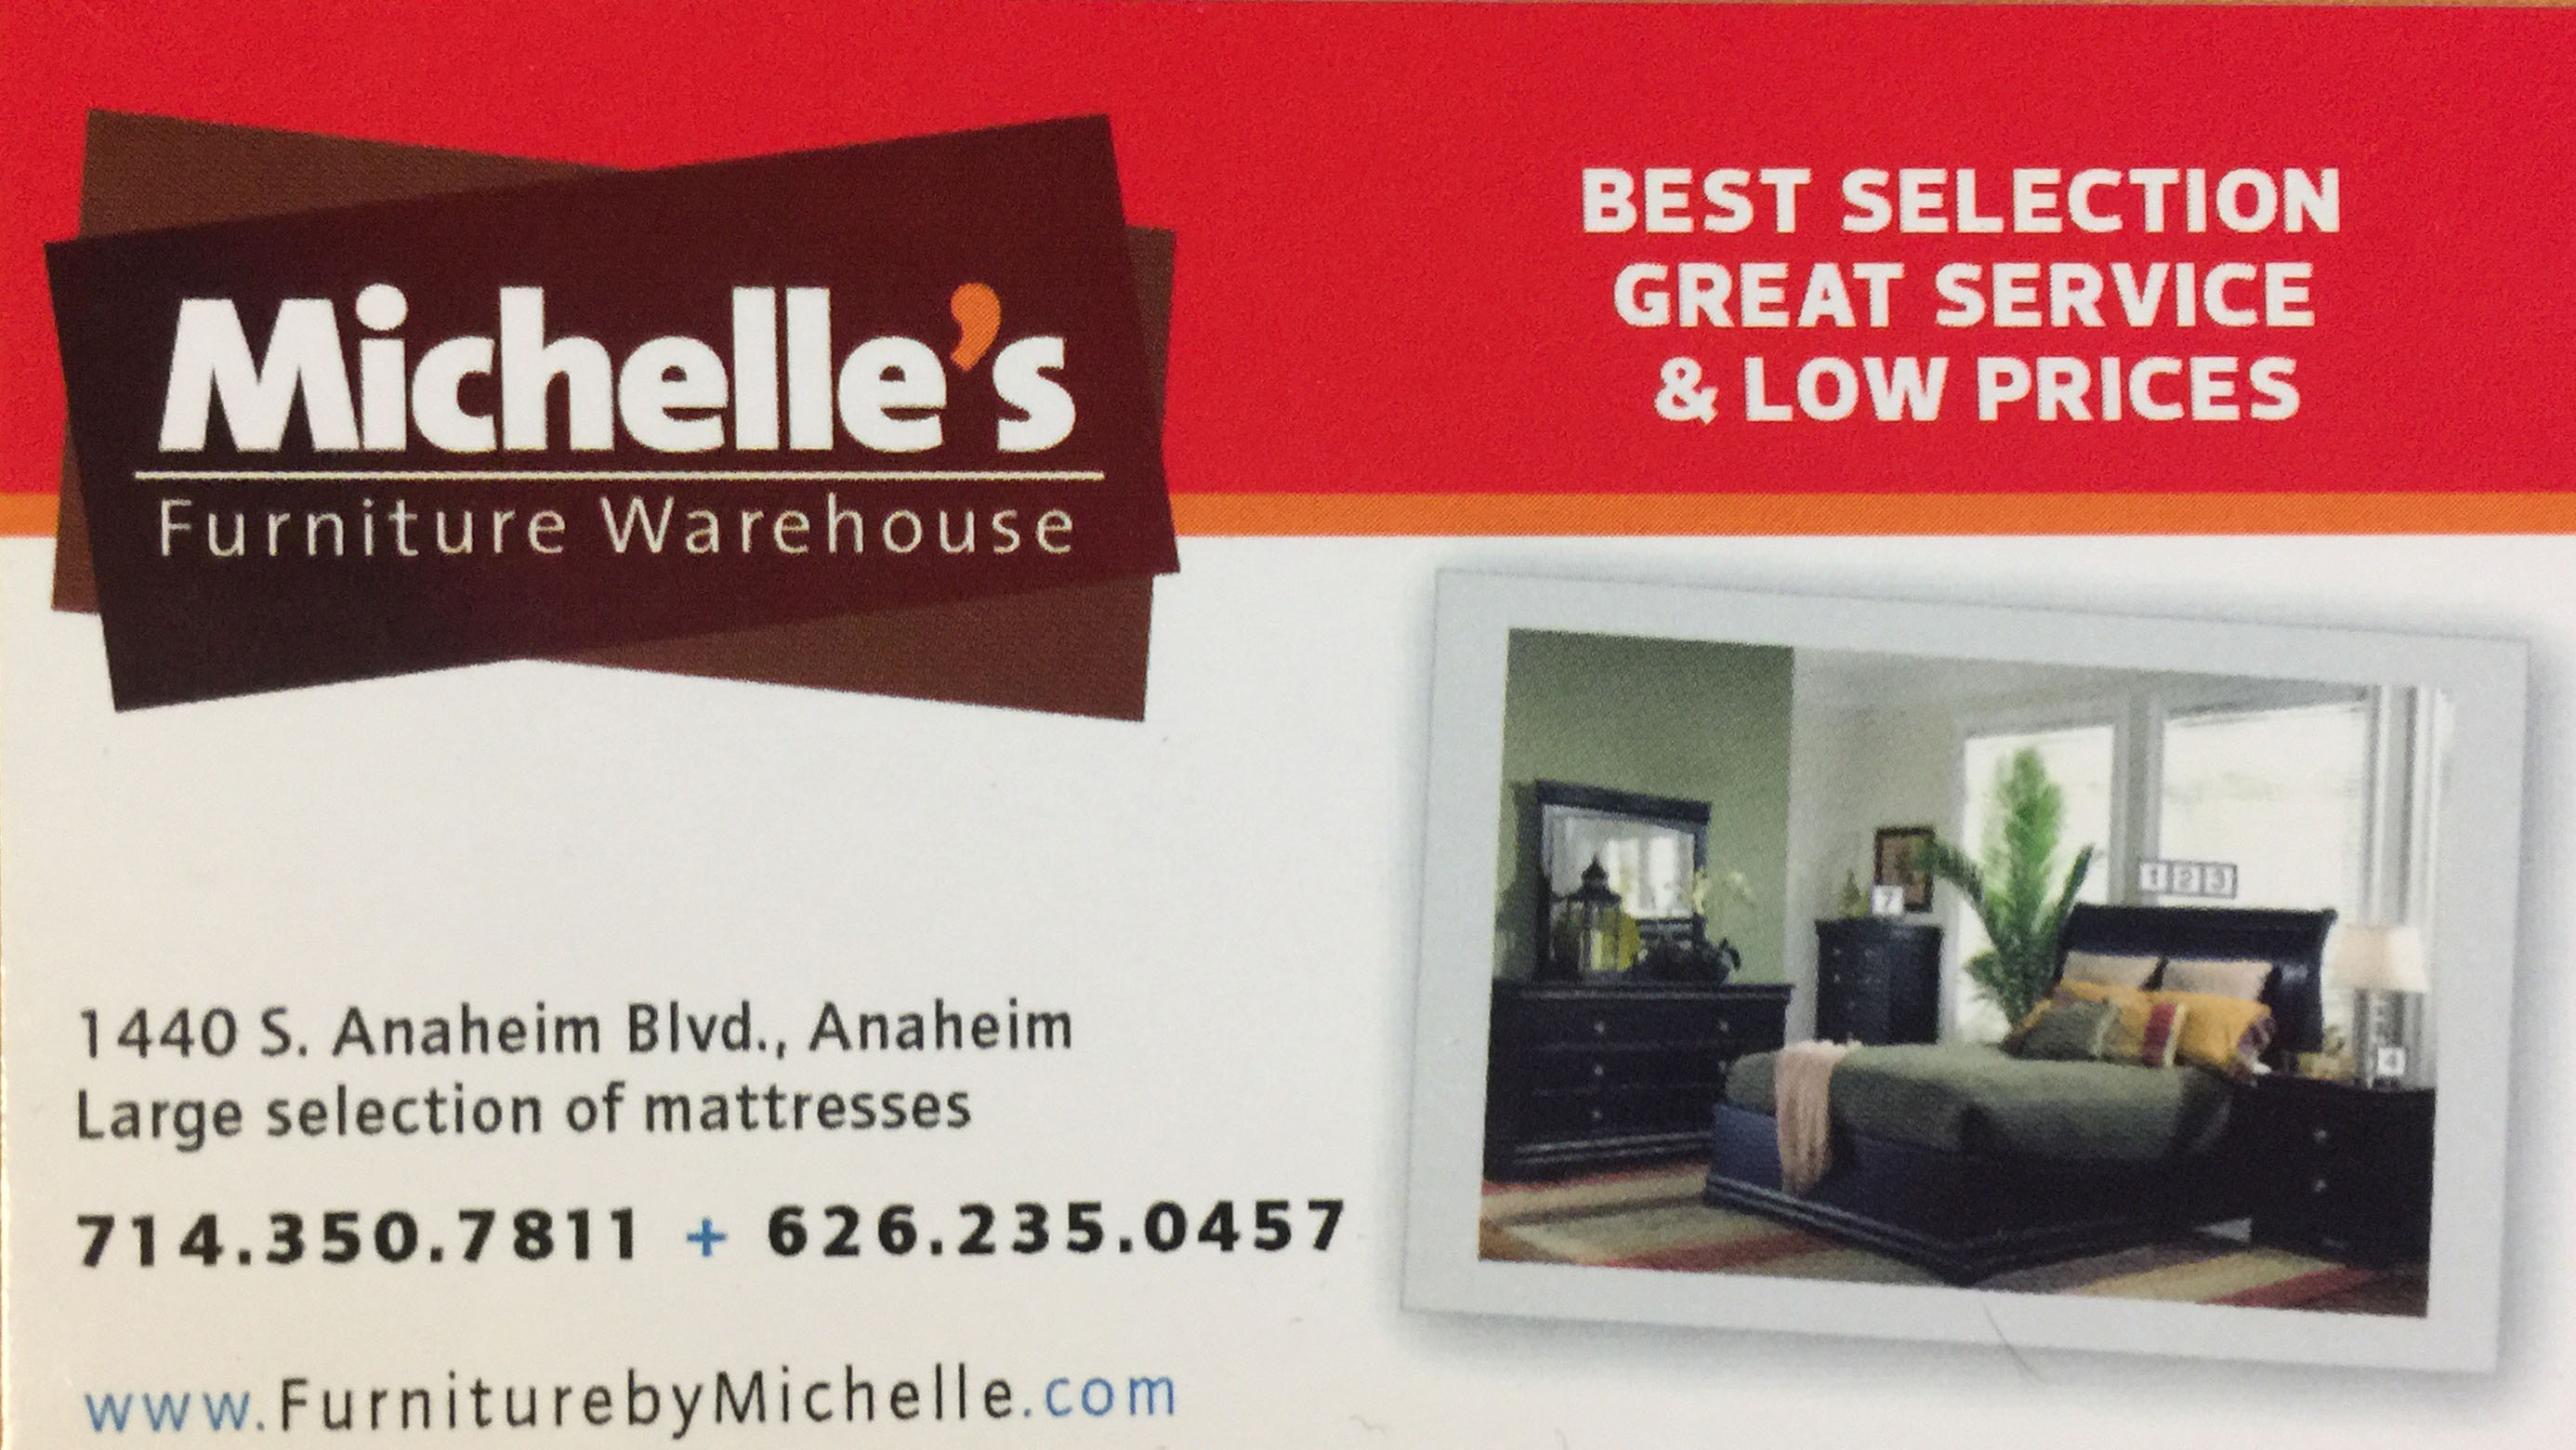 Michelle's Furniture Warehouse